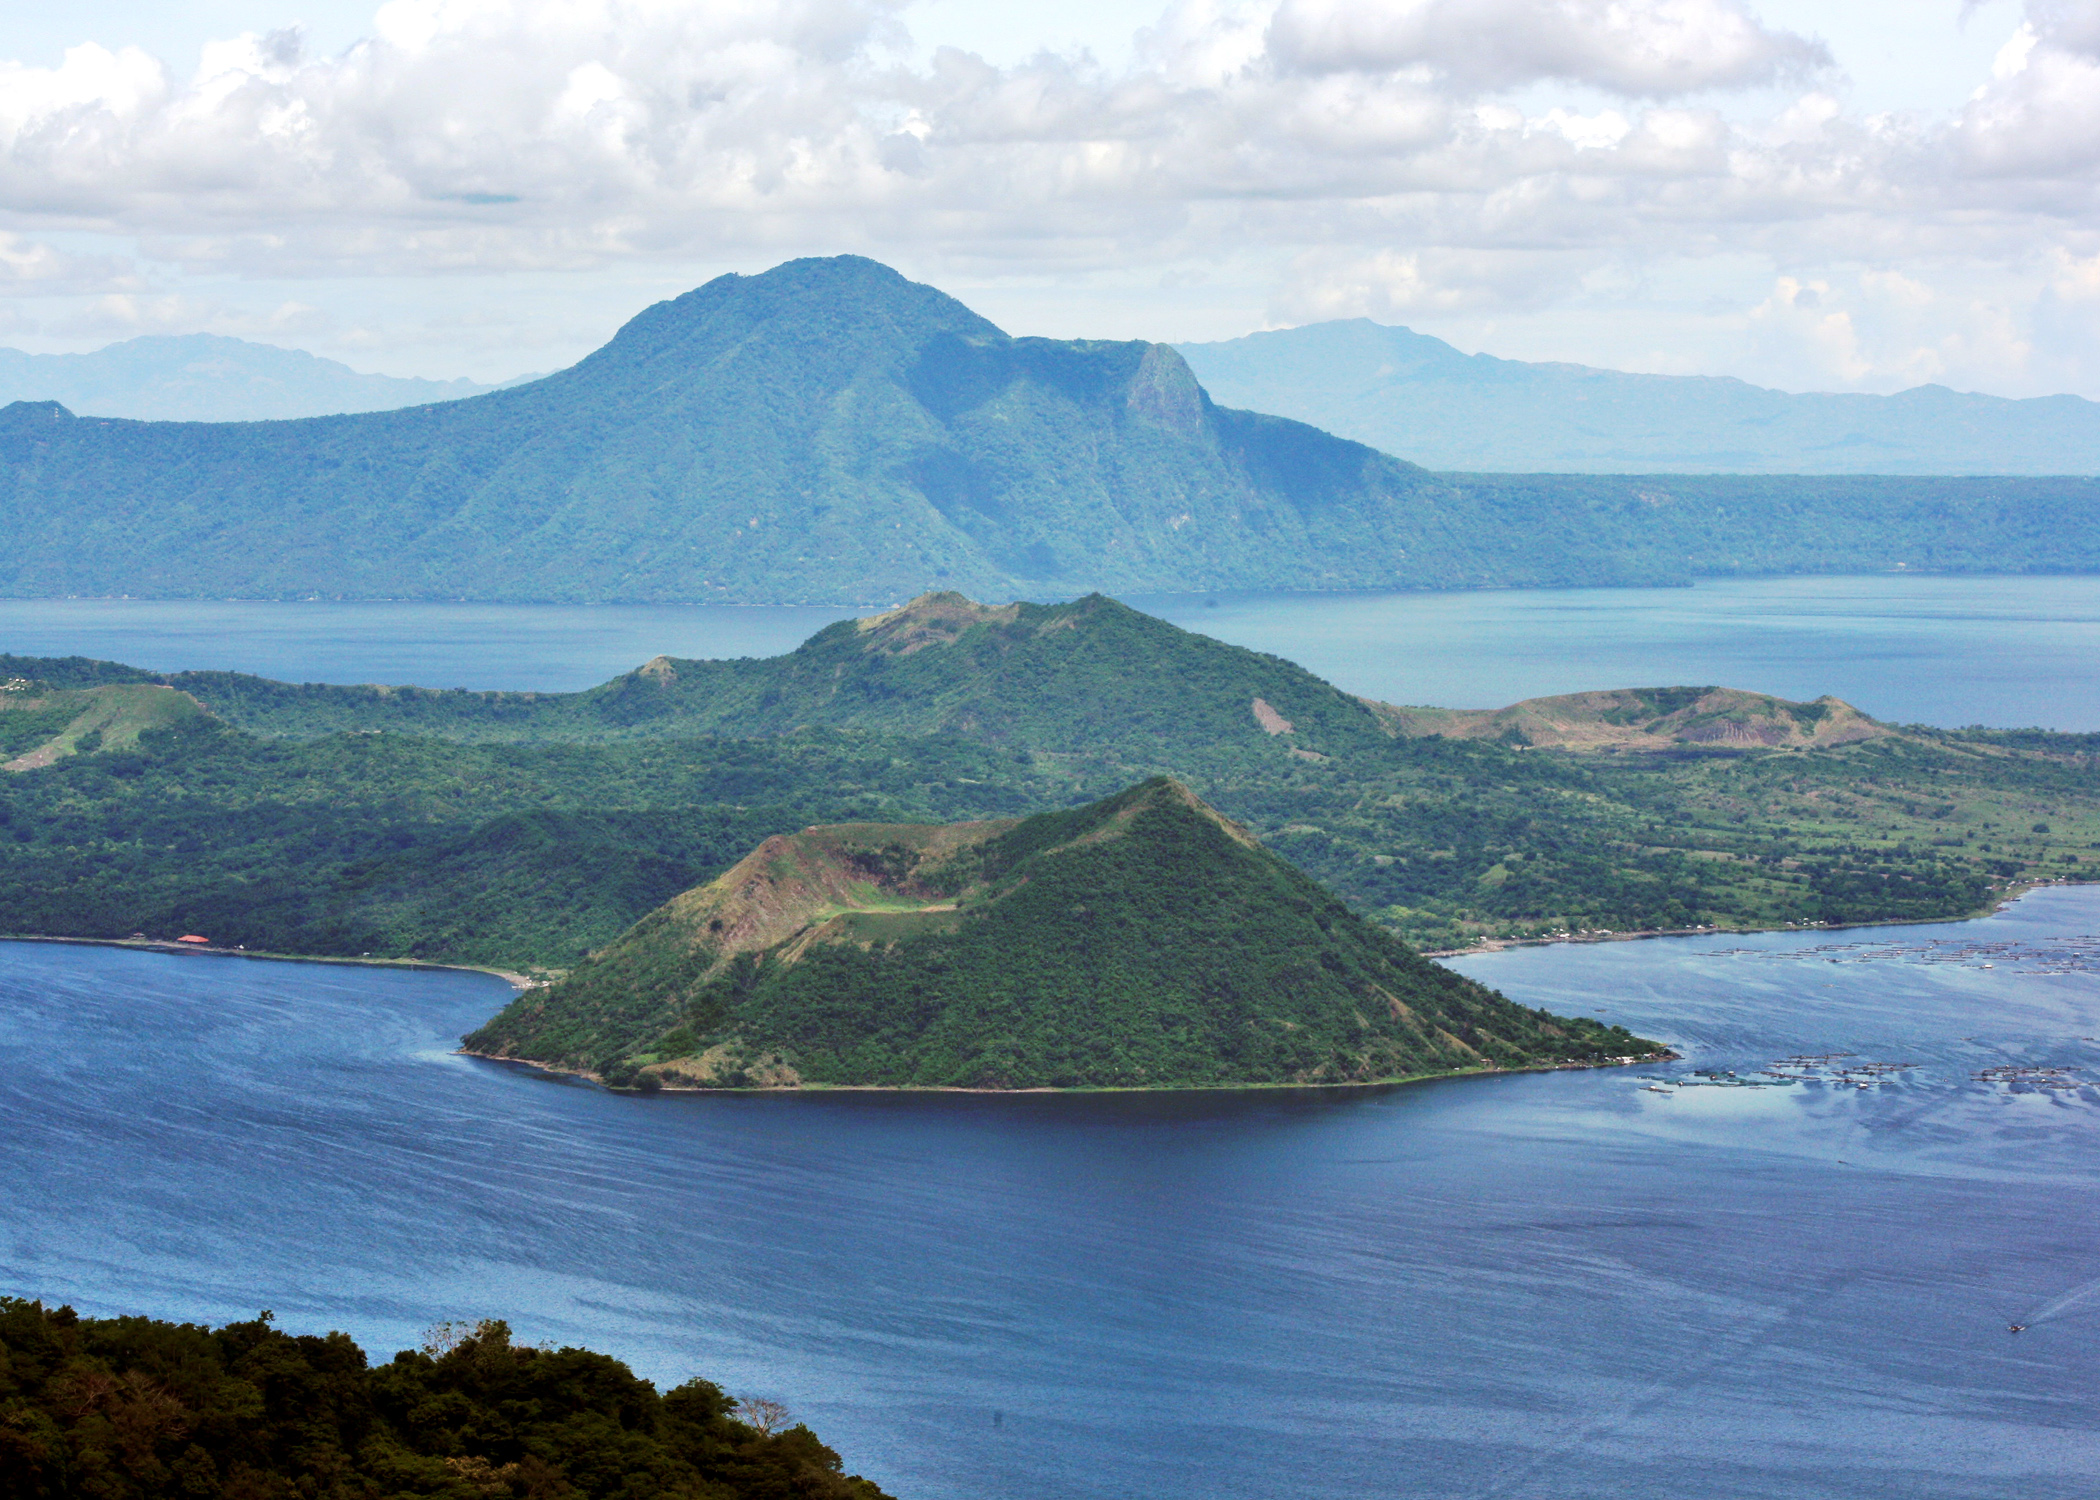 Taal Volcano - Lake in Philippines - Thousand Wonders